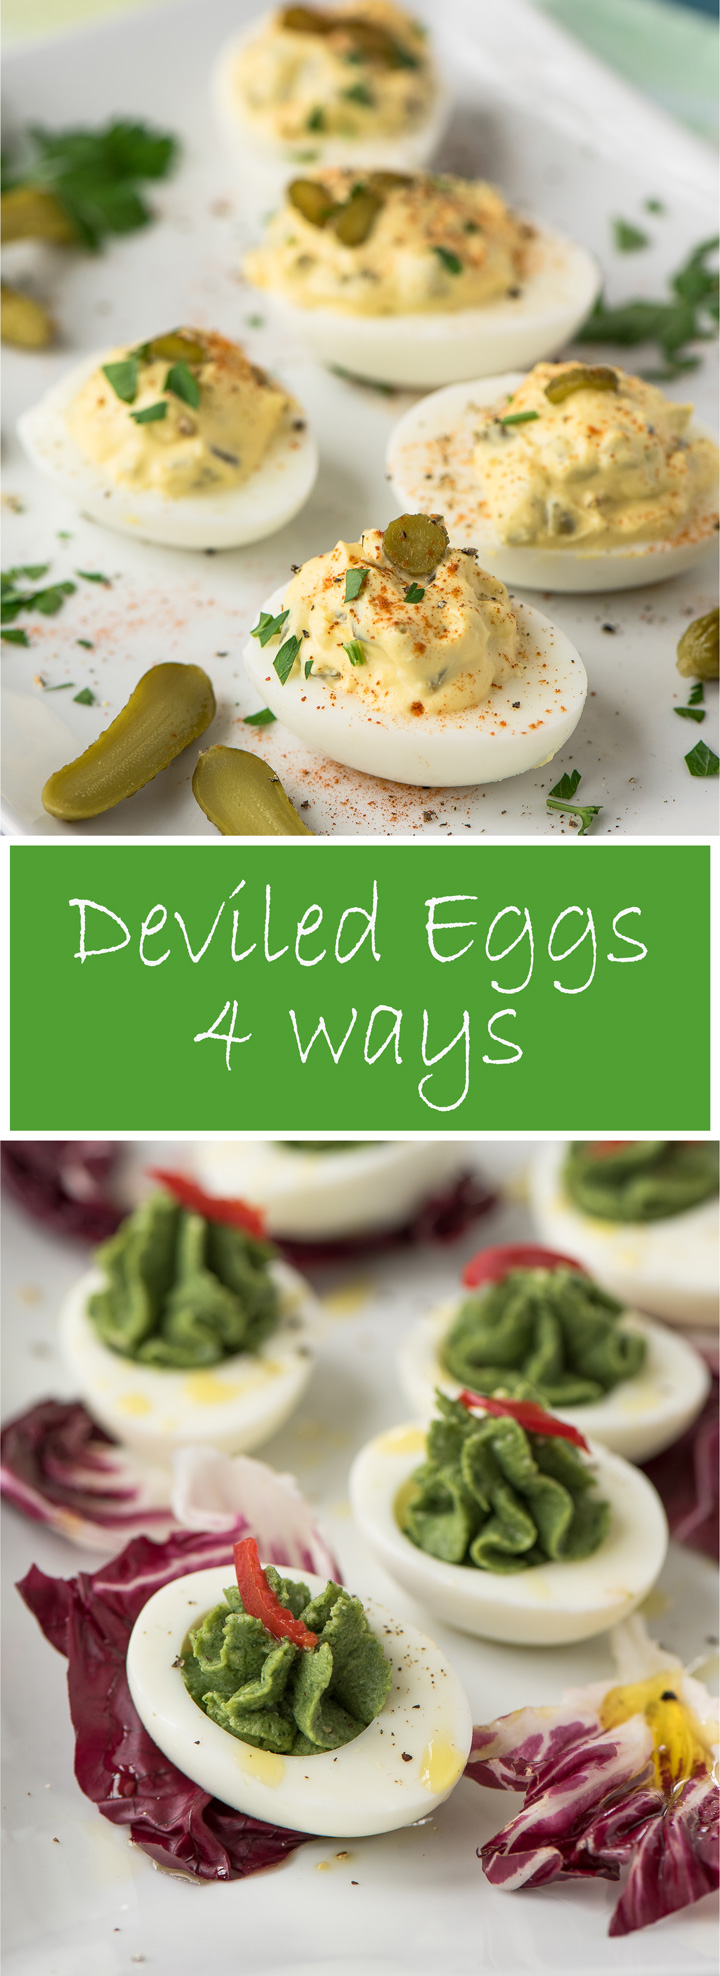 Deviled Eggs, 4 Ways. How to make perfect deviled eggs with recipes for 4 variations, Cornichon Deviled Eggs, Truffle Deviled Eggs, Spinach Deviled Eggs and Traditional Deviled Eggs.